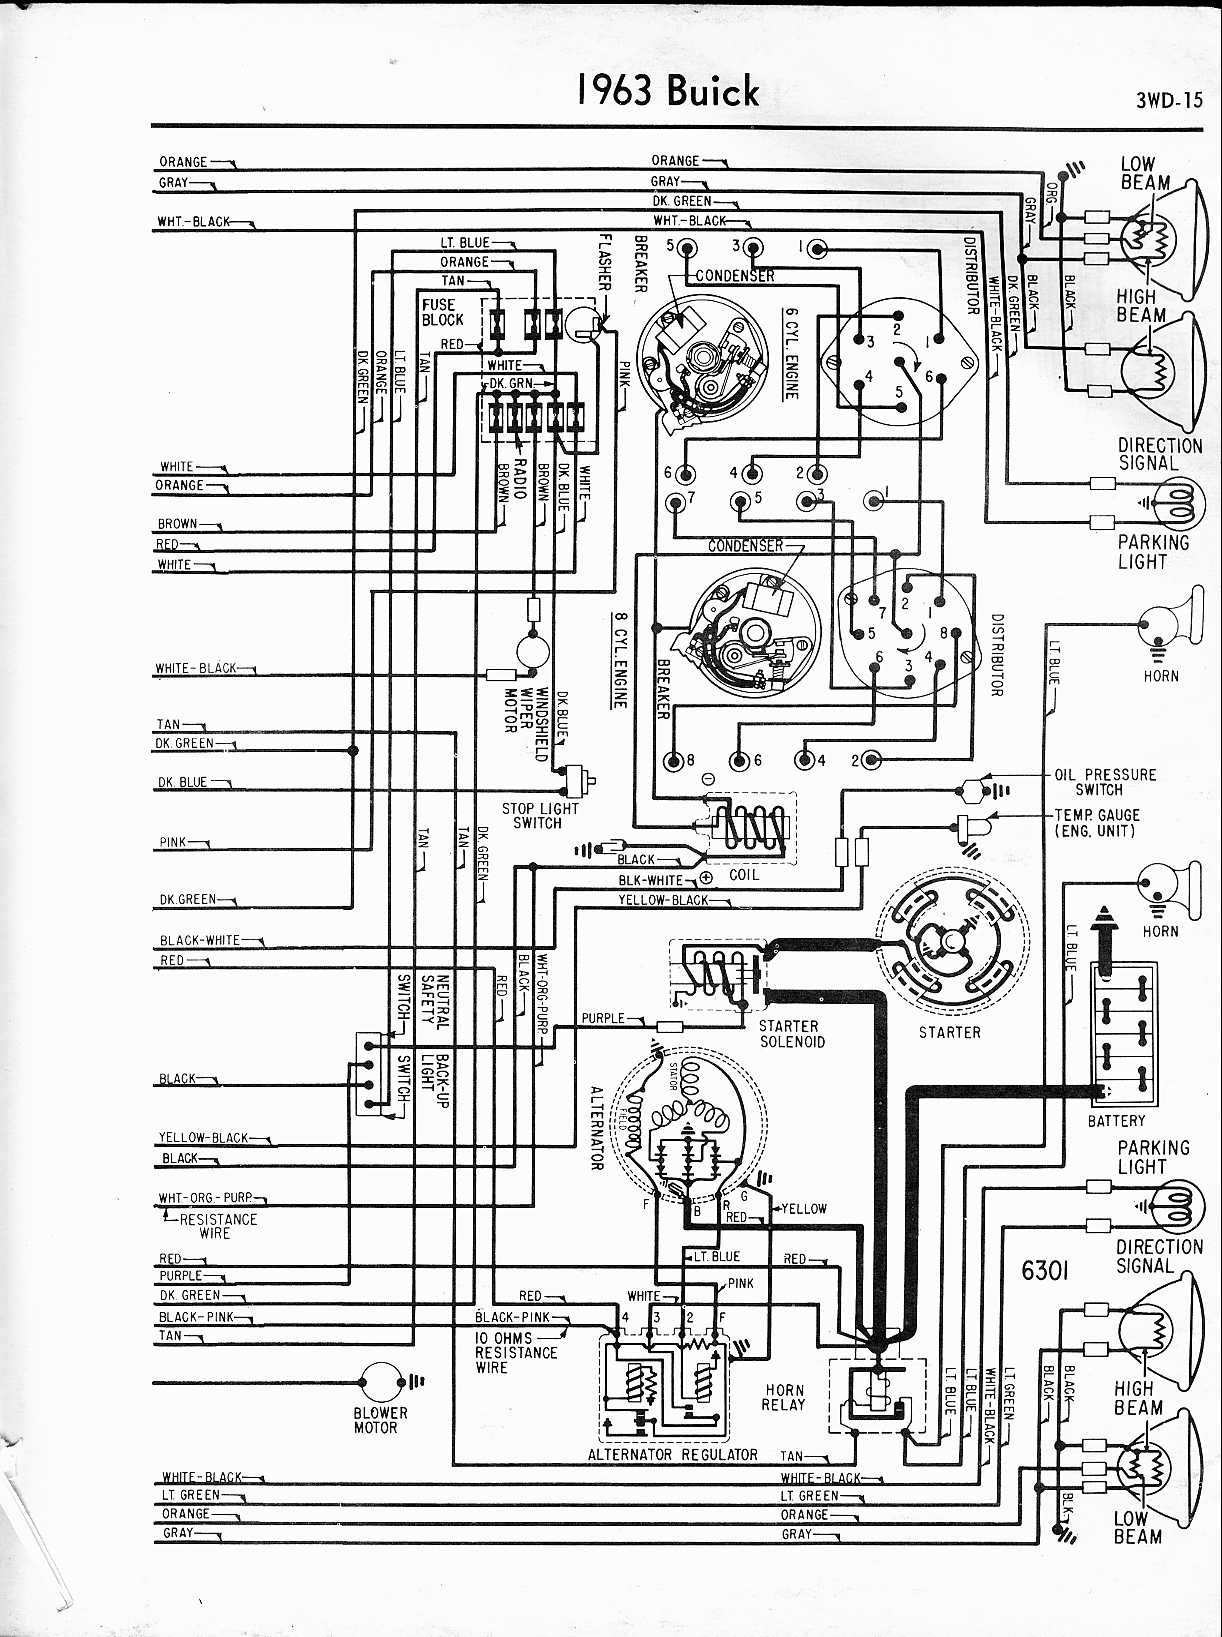 72 Olds Engine Wiring Worksheet And Diagram Jcb 926 Fork Lift Schematic 1957 Buick Harness Schematics Diagrams U2022 Rh Parntesis Co 1987 Chevy Pickup 57 Ignition Kohler Command